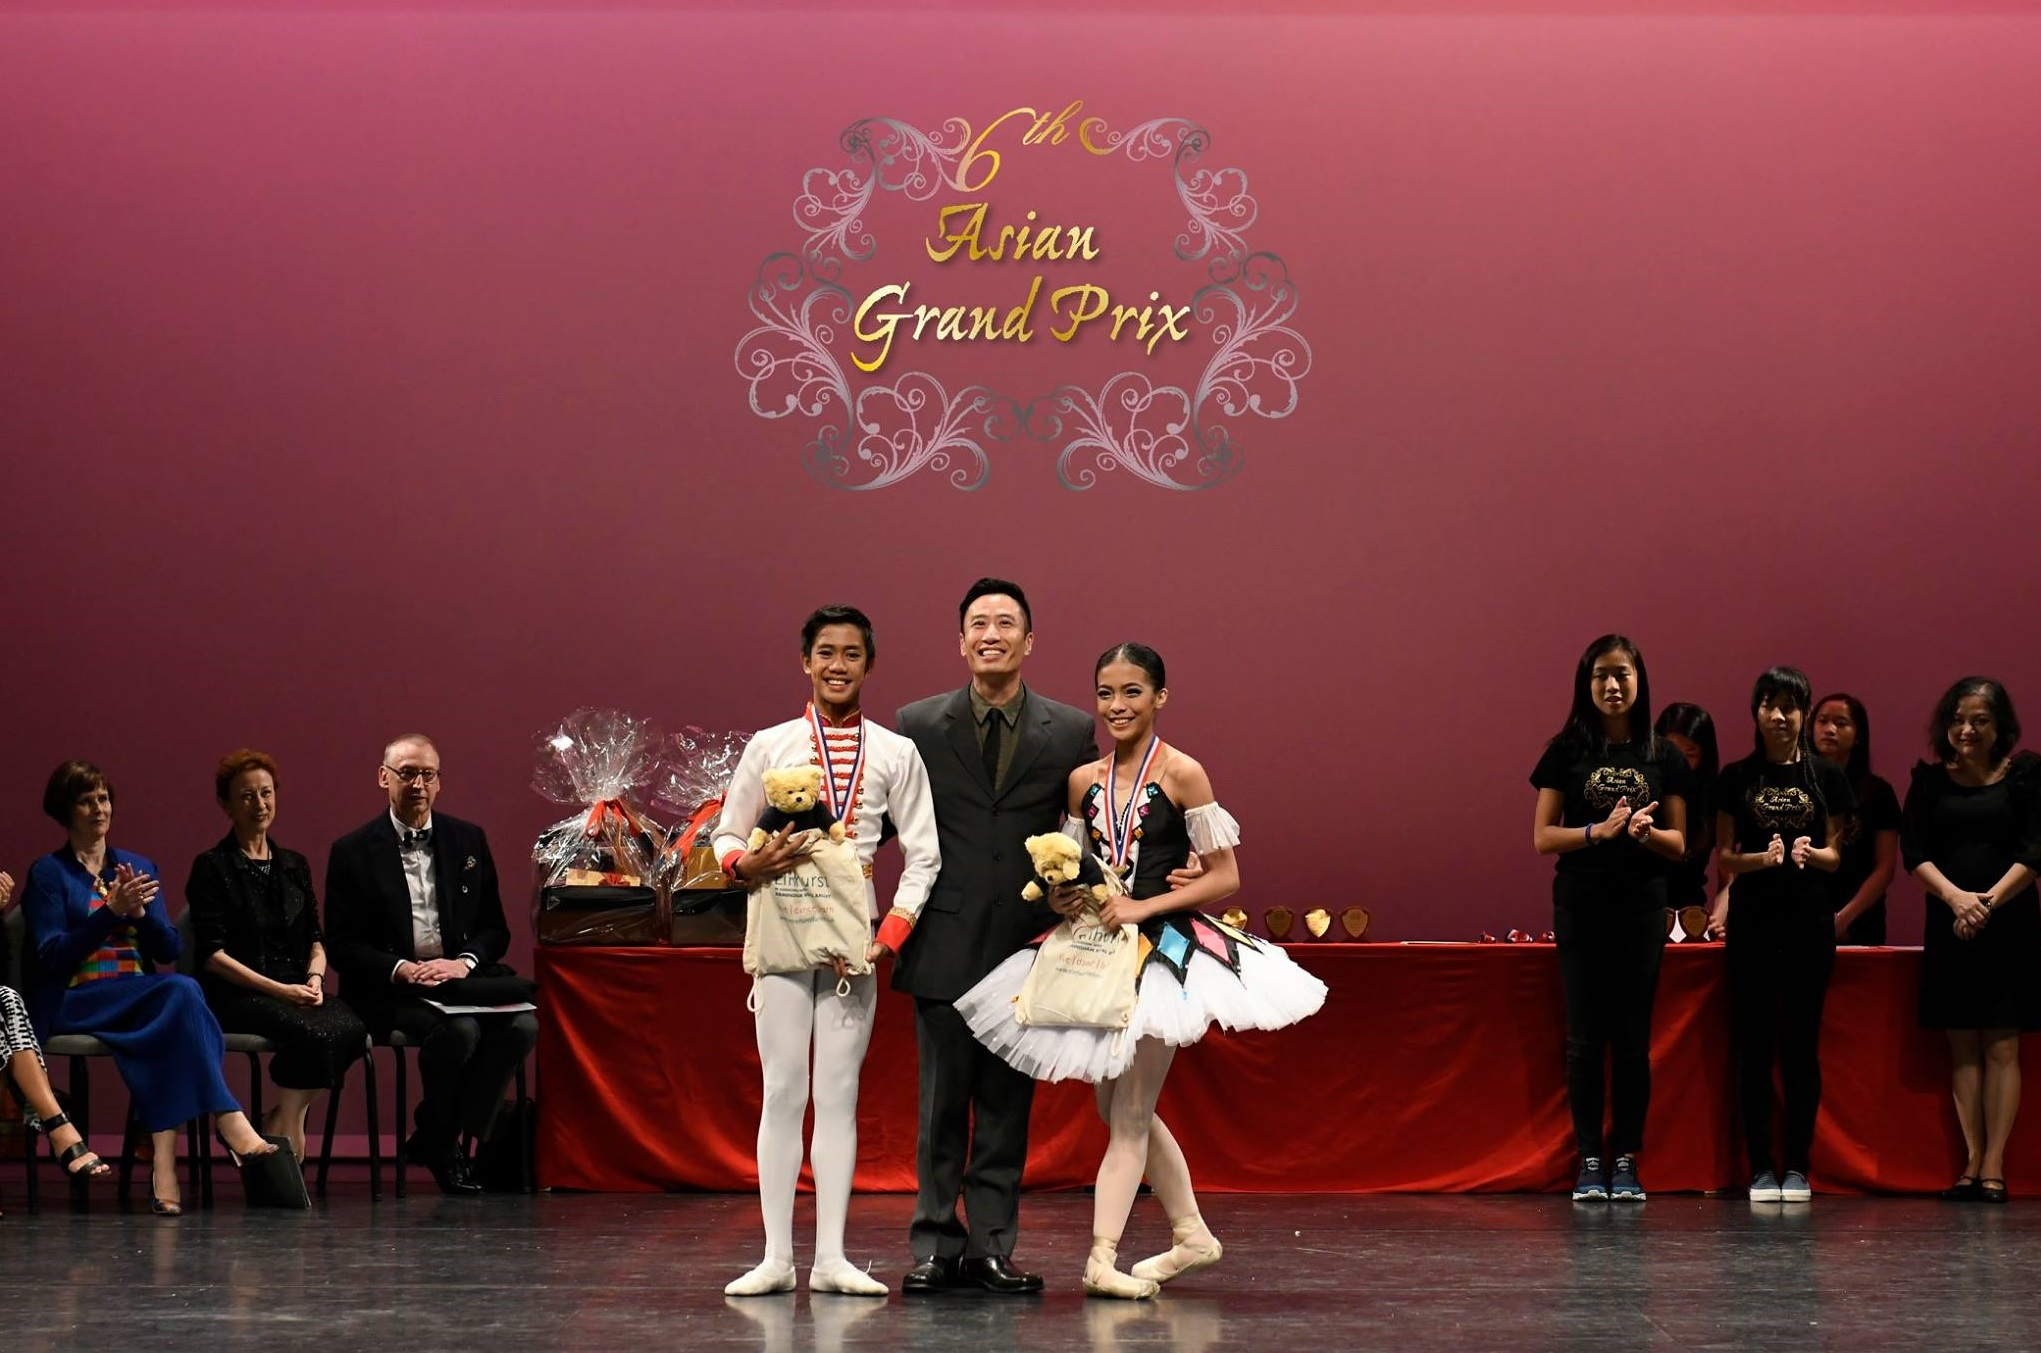 Two Filipinos received summer school scholarships from the Elmhurst School of Dance in Birmingham, United Kingdom: Nicole Barroso of Lisa Macuja School of Ballet Manila (right) and John Edmar Sumera of Academy One Music and Dance Center (left). Photo courtesy of Asian Grand Prix